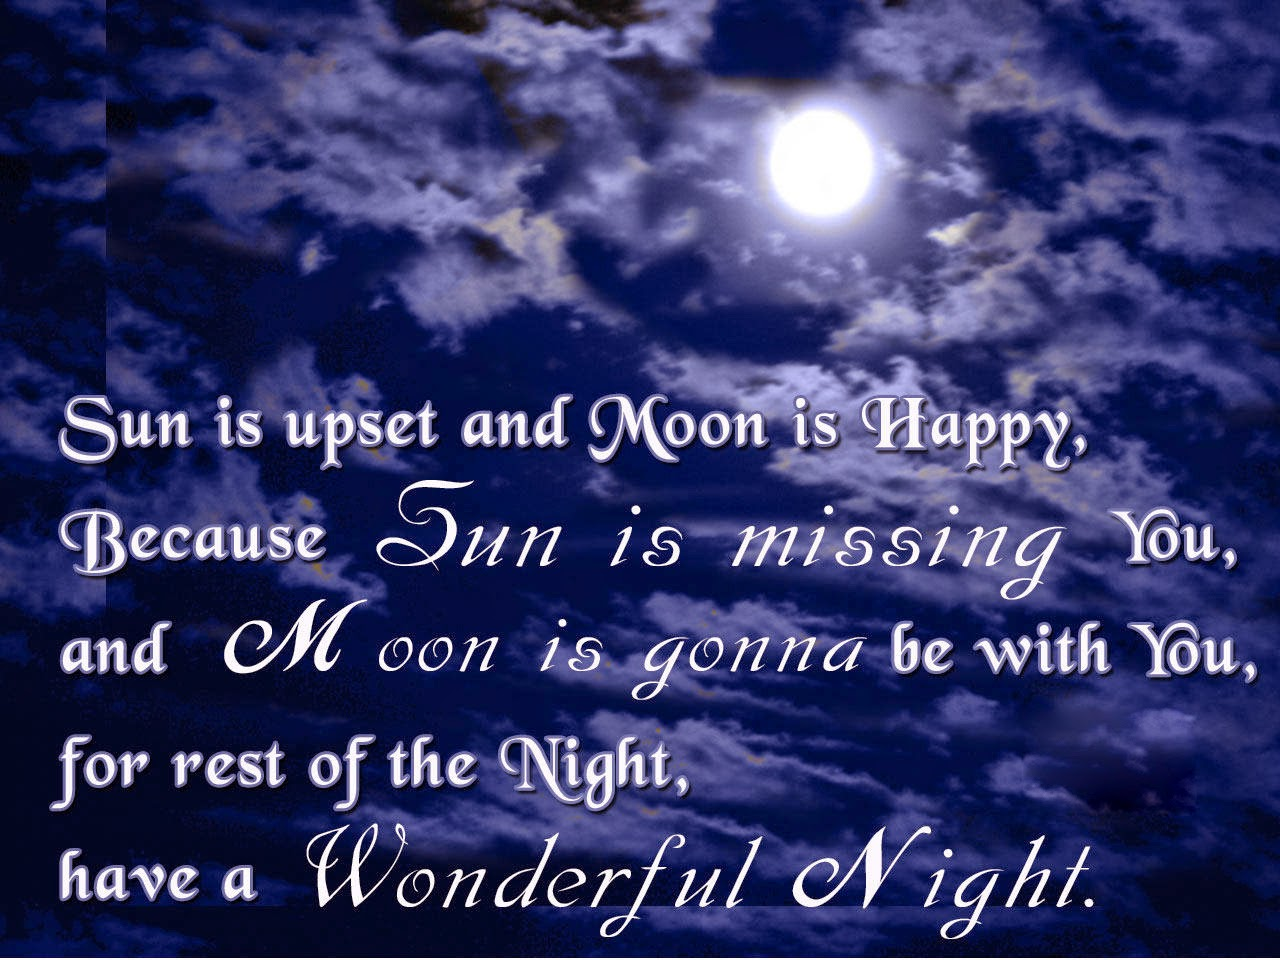 Good Night Quote For Special Friend : Hd wallpapers groups high definition download